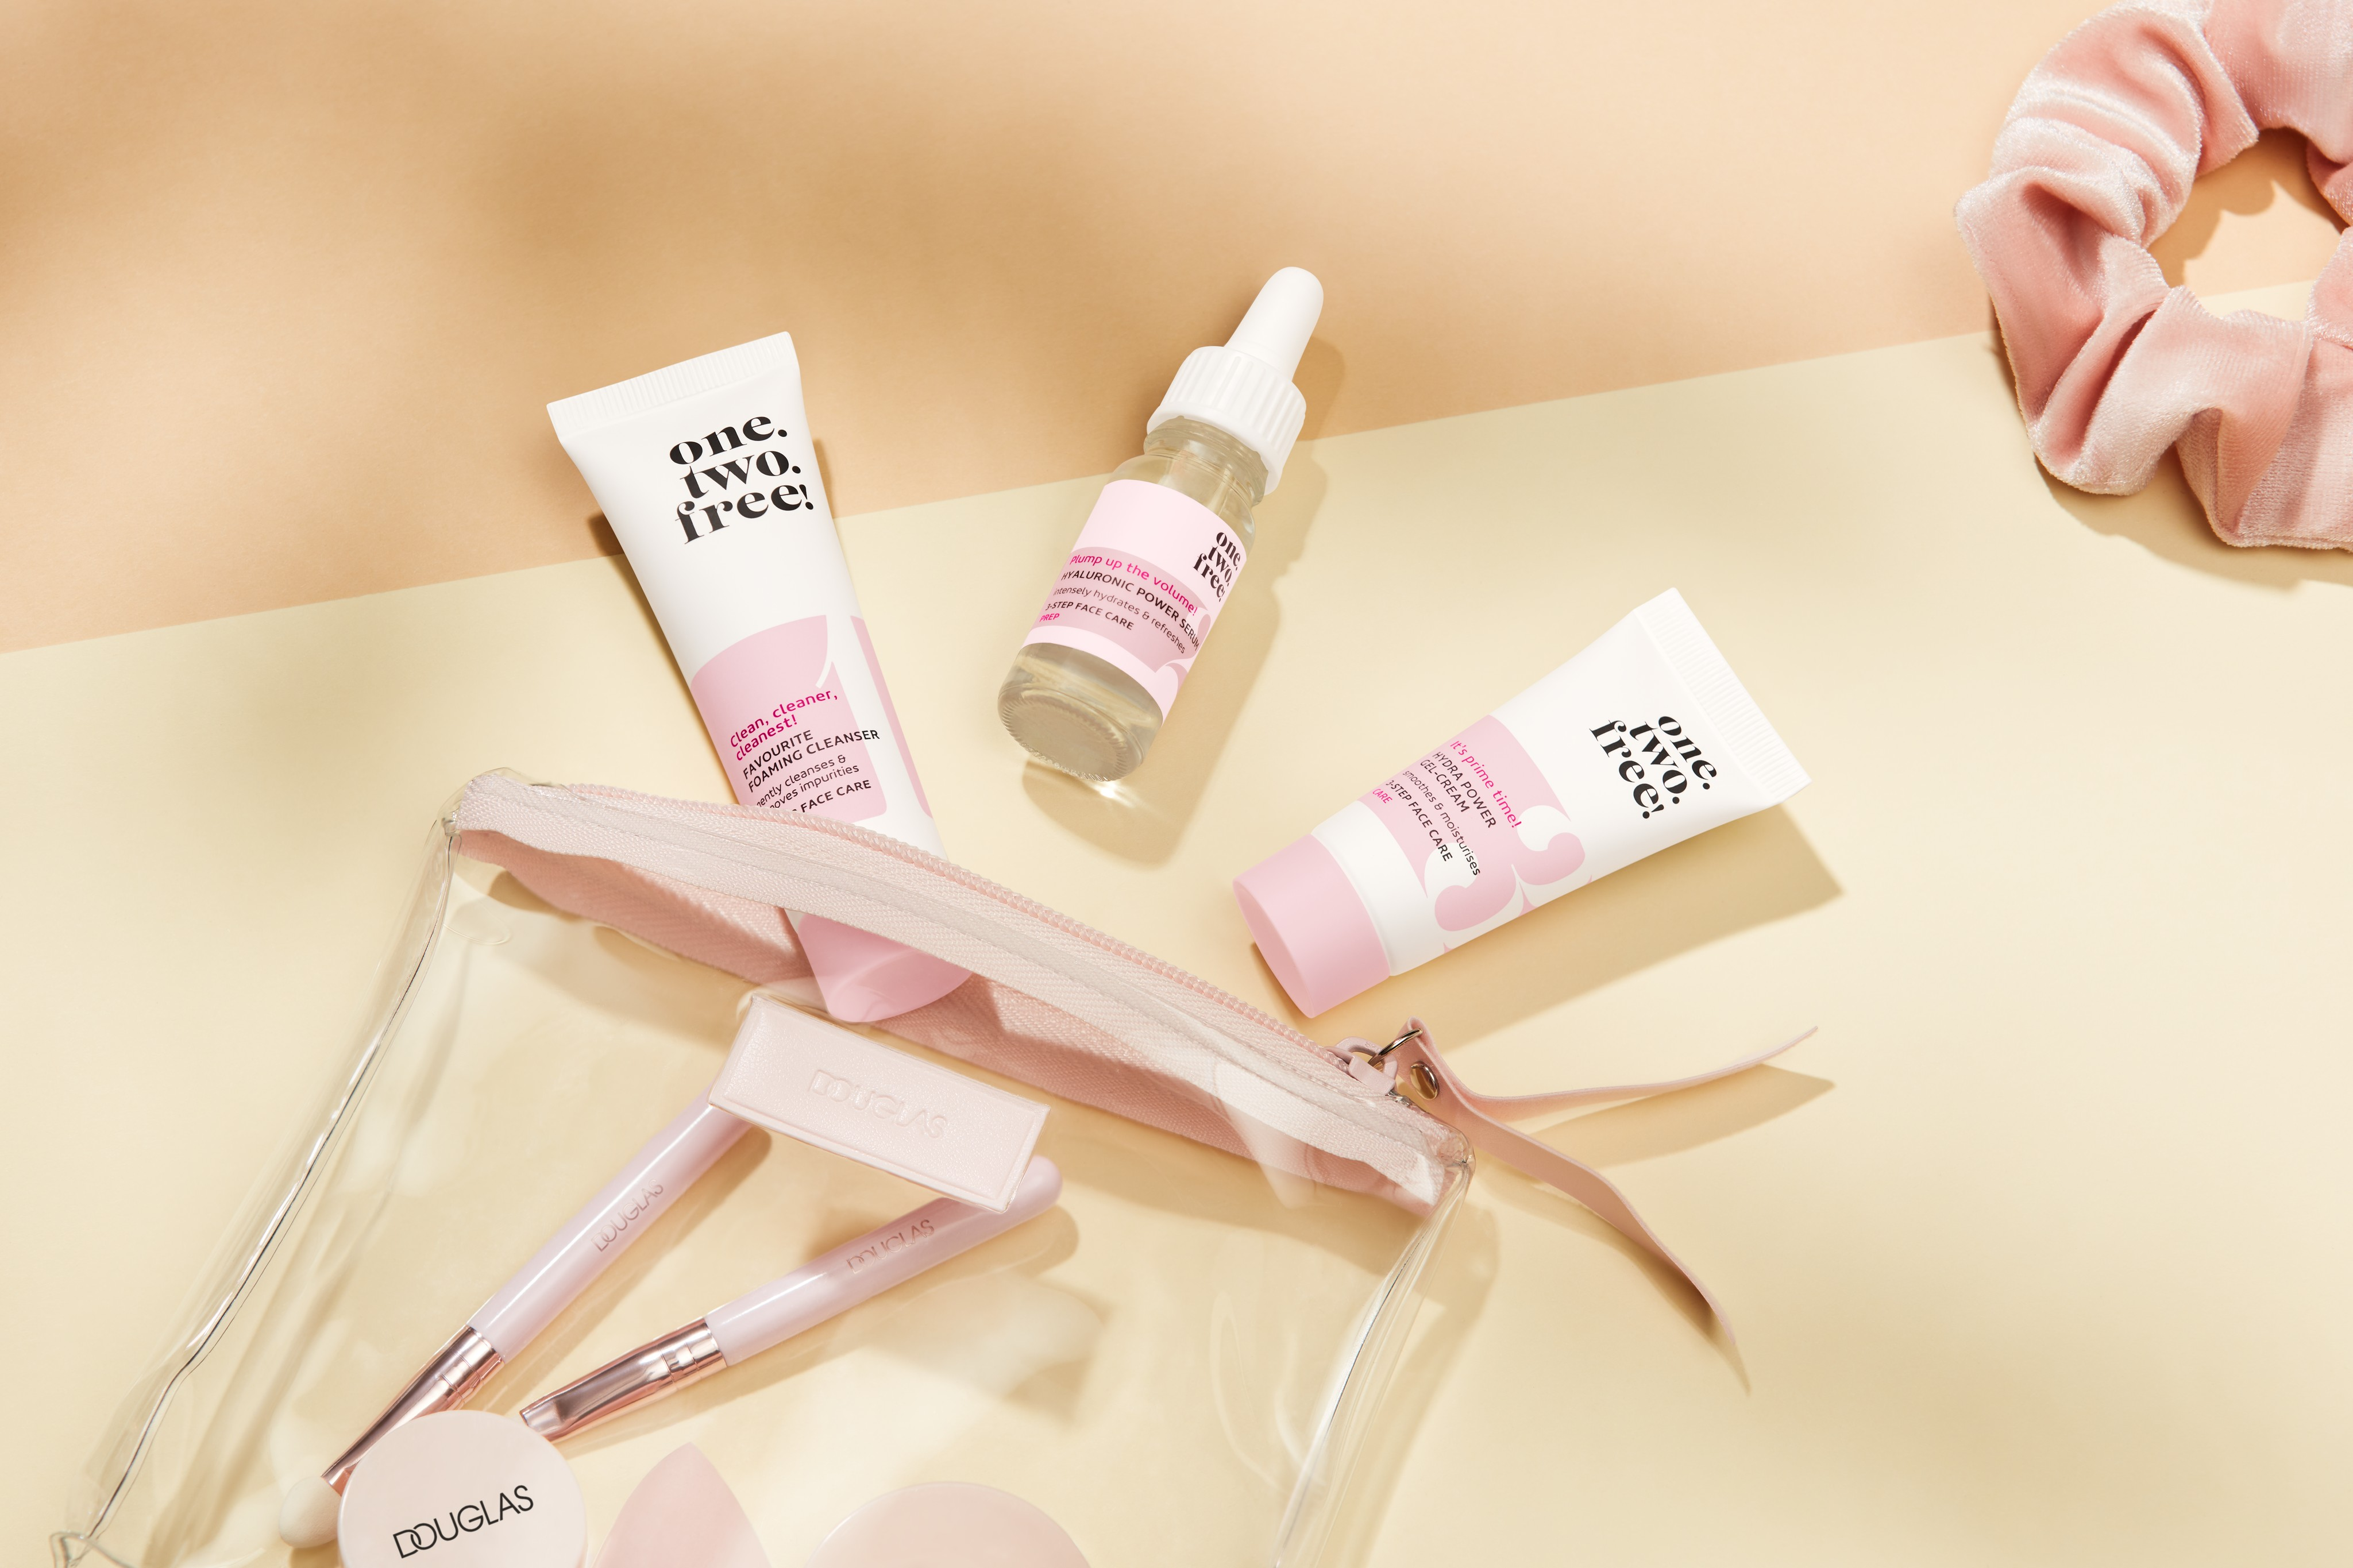 Skincare-product-travelsize-douglas-collection-onetwofree-unlimited-Web-Rendition